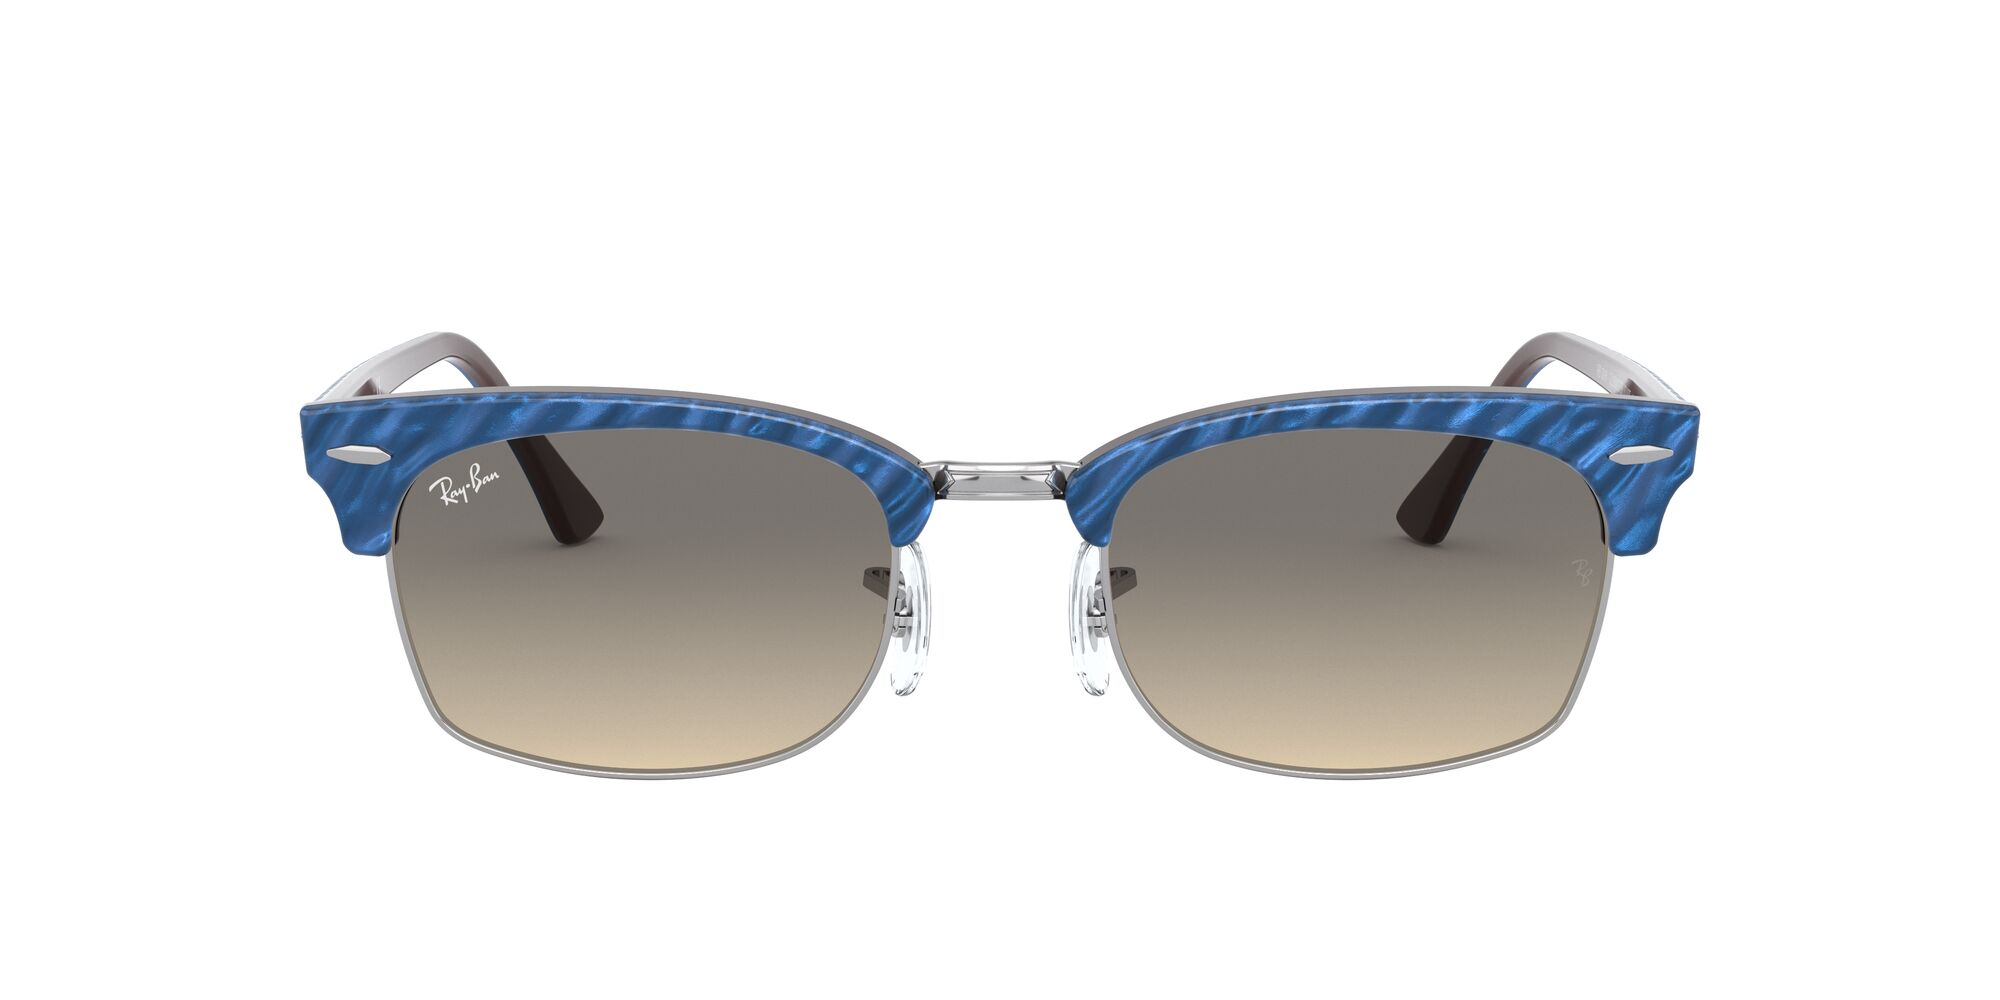 Front Ray-Ban Ray-Ban 0RB3916 131032 52/21 Blauw, Bruin/Grijs